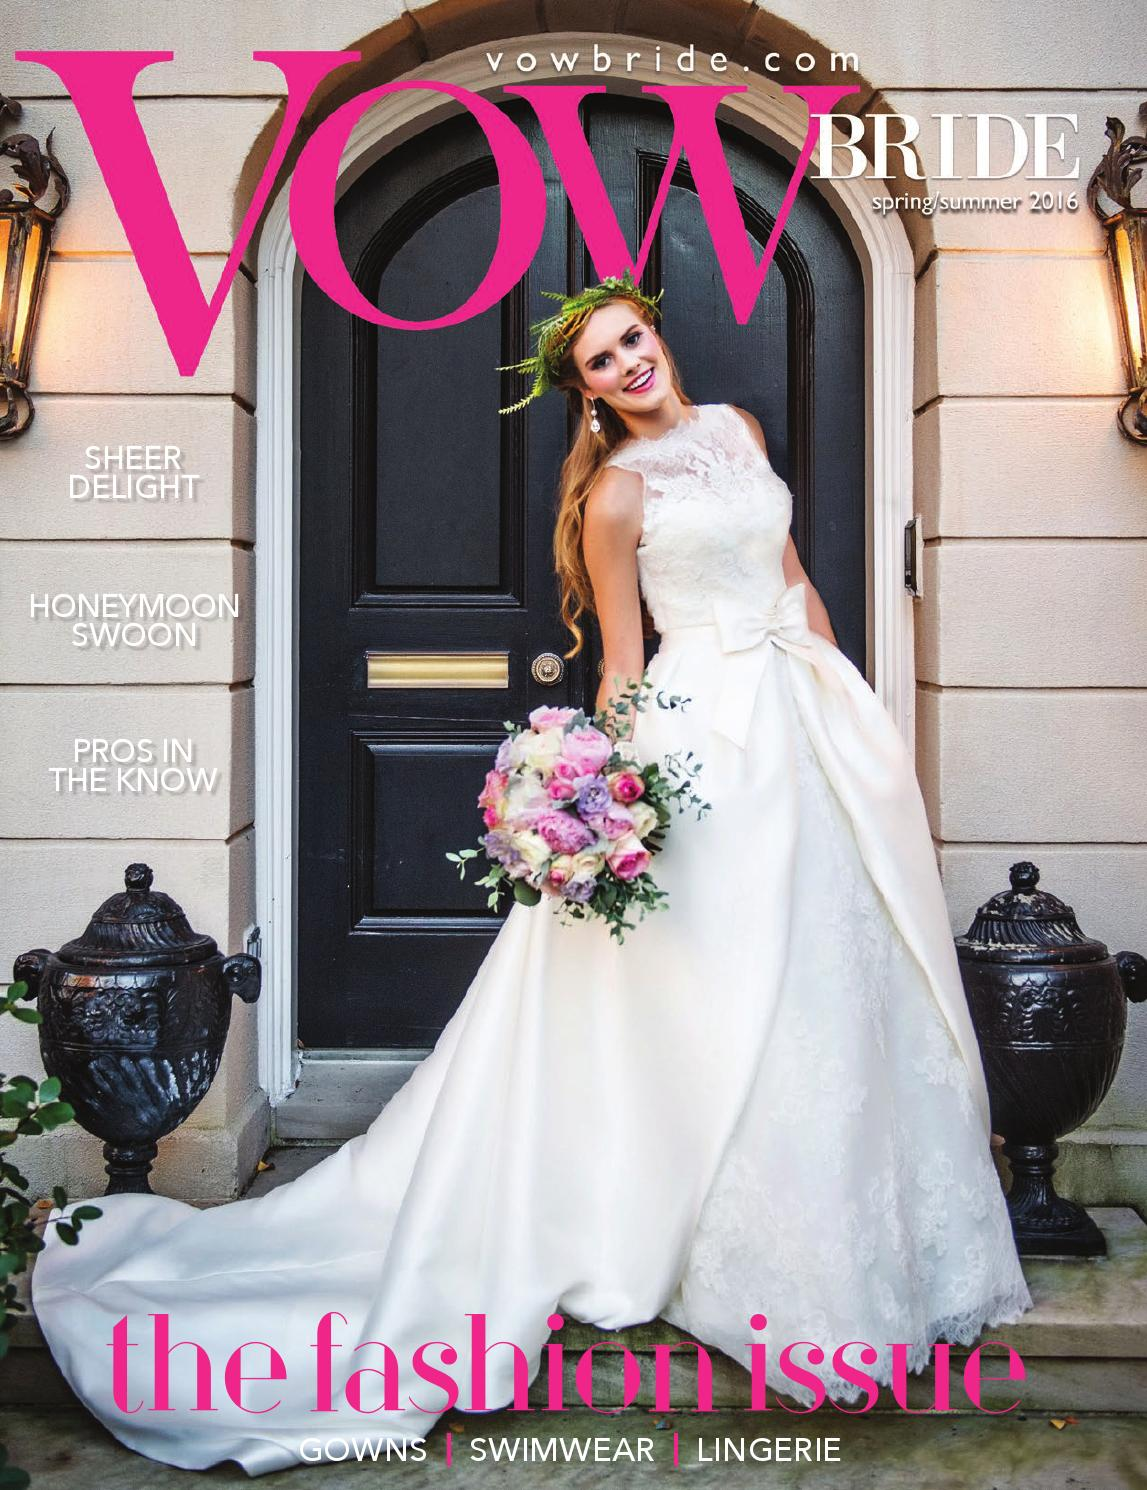 VOW Bride Spring/Summer 2016 by Vow Bride - issuu